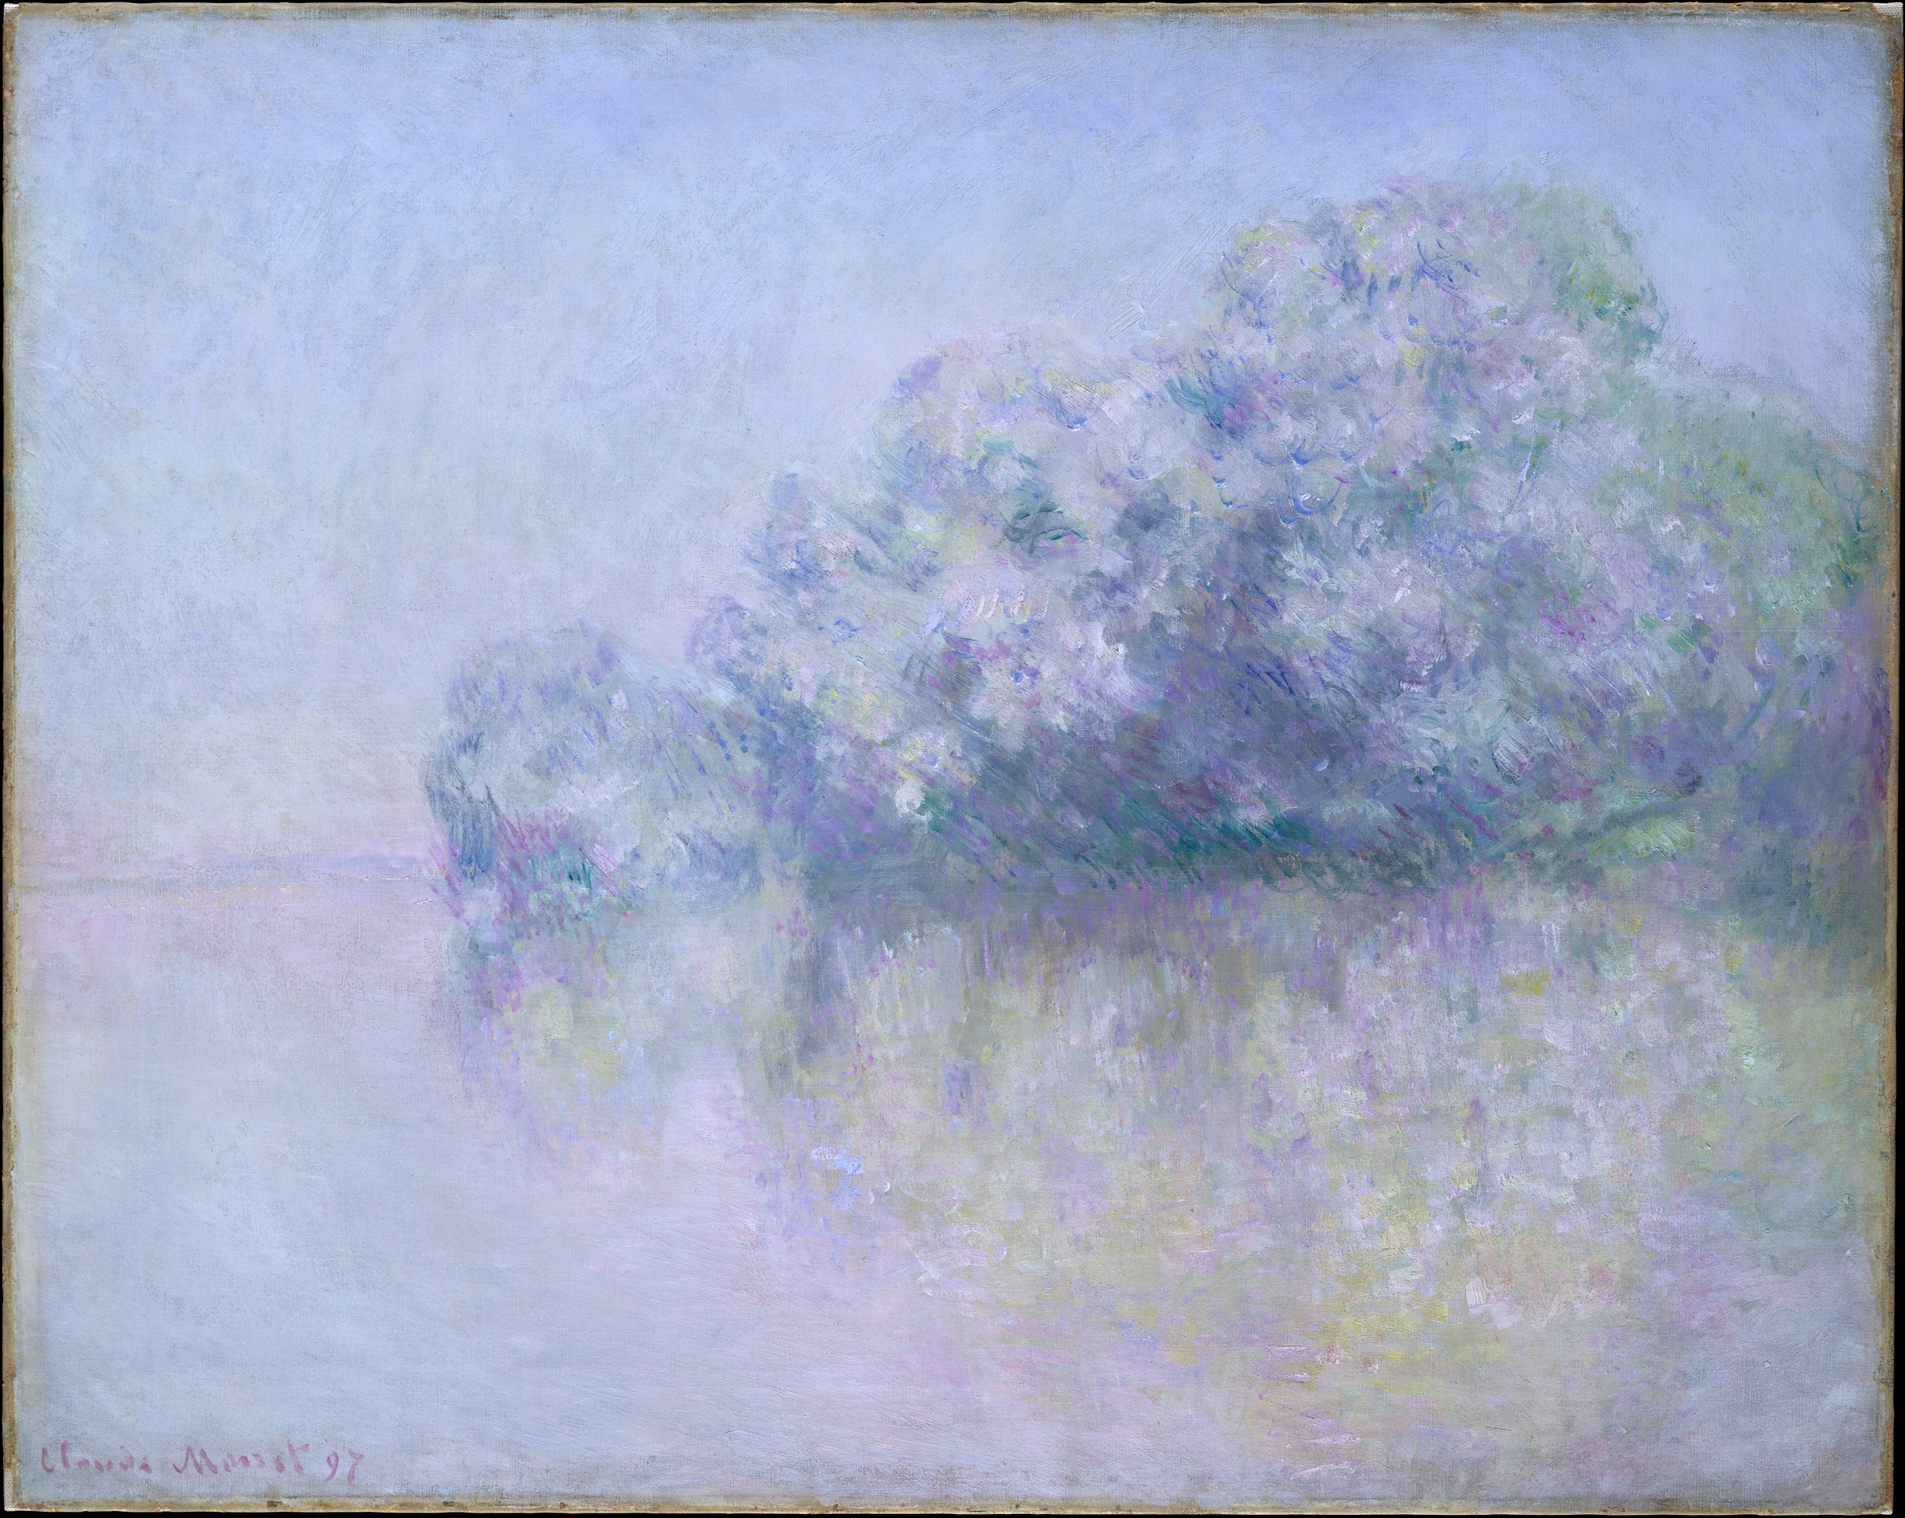 """Île aux Orties near Vernon"" by Claude Monet, 1897, oil on canvas,   28 7/8 x 36 1/2 in. Metropolitan Museum of Art, CCO 1.0."